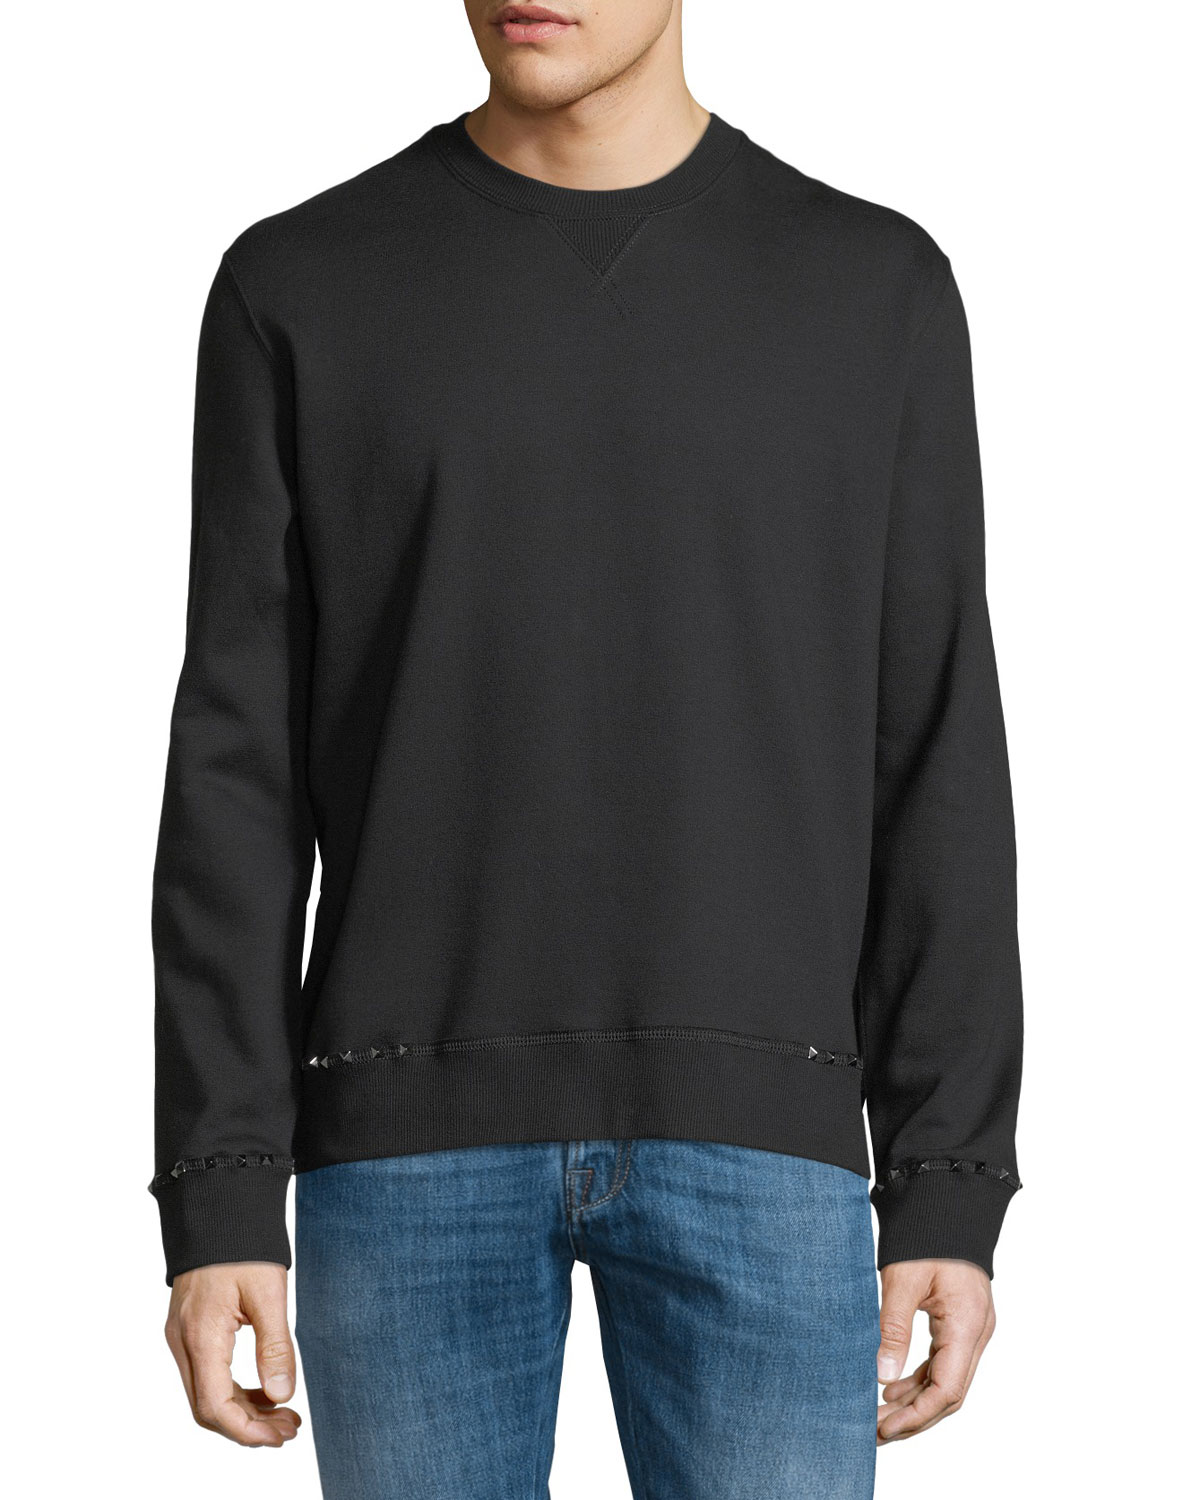 Rockstud Untitled Fleece Sweatshirt